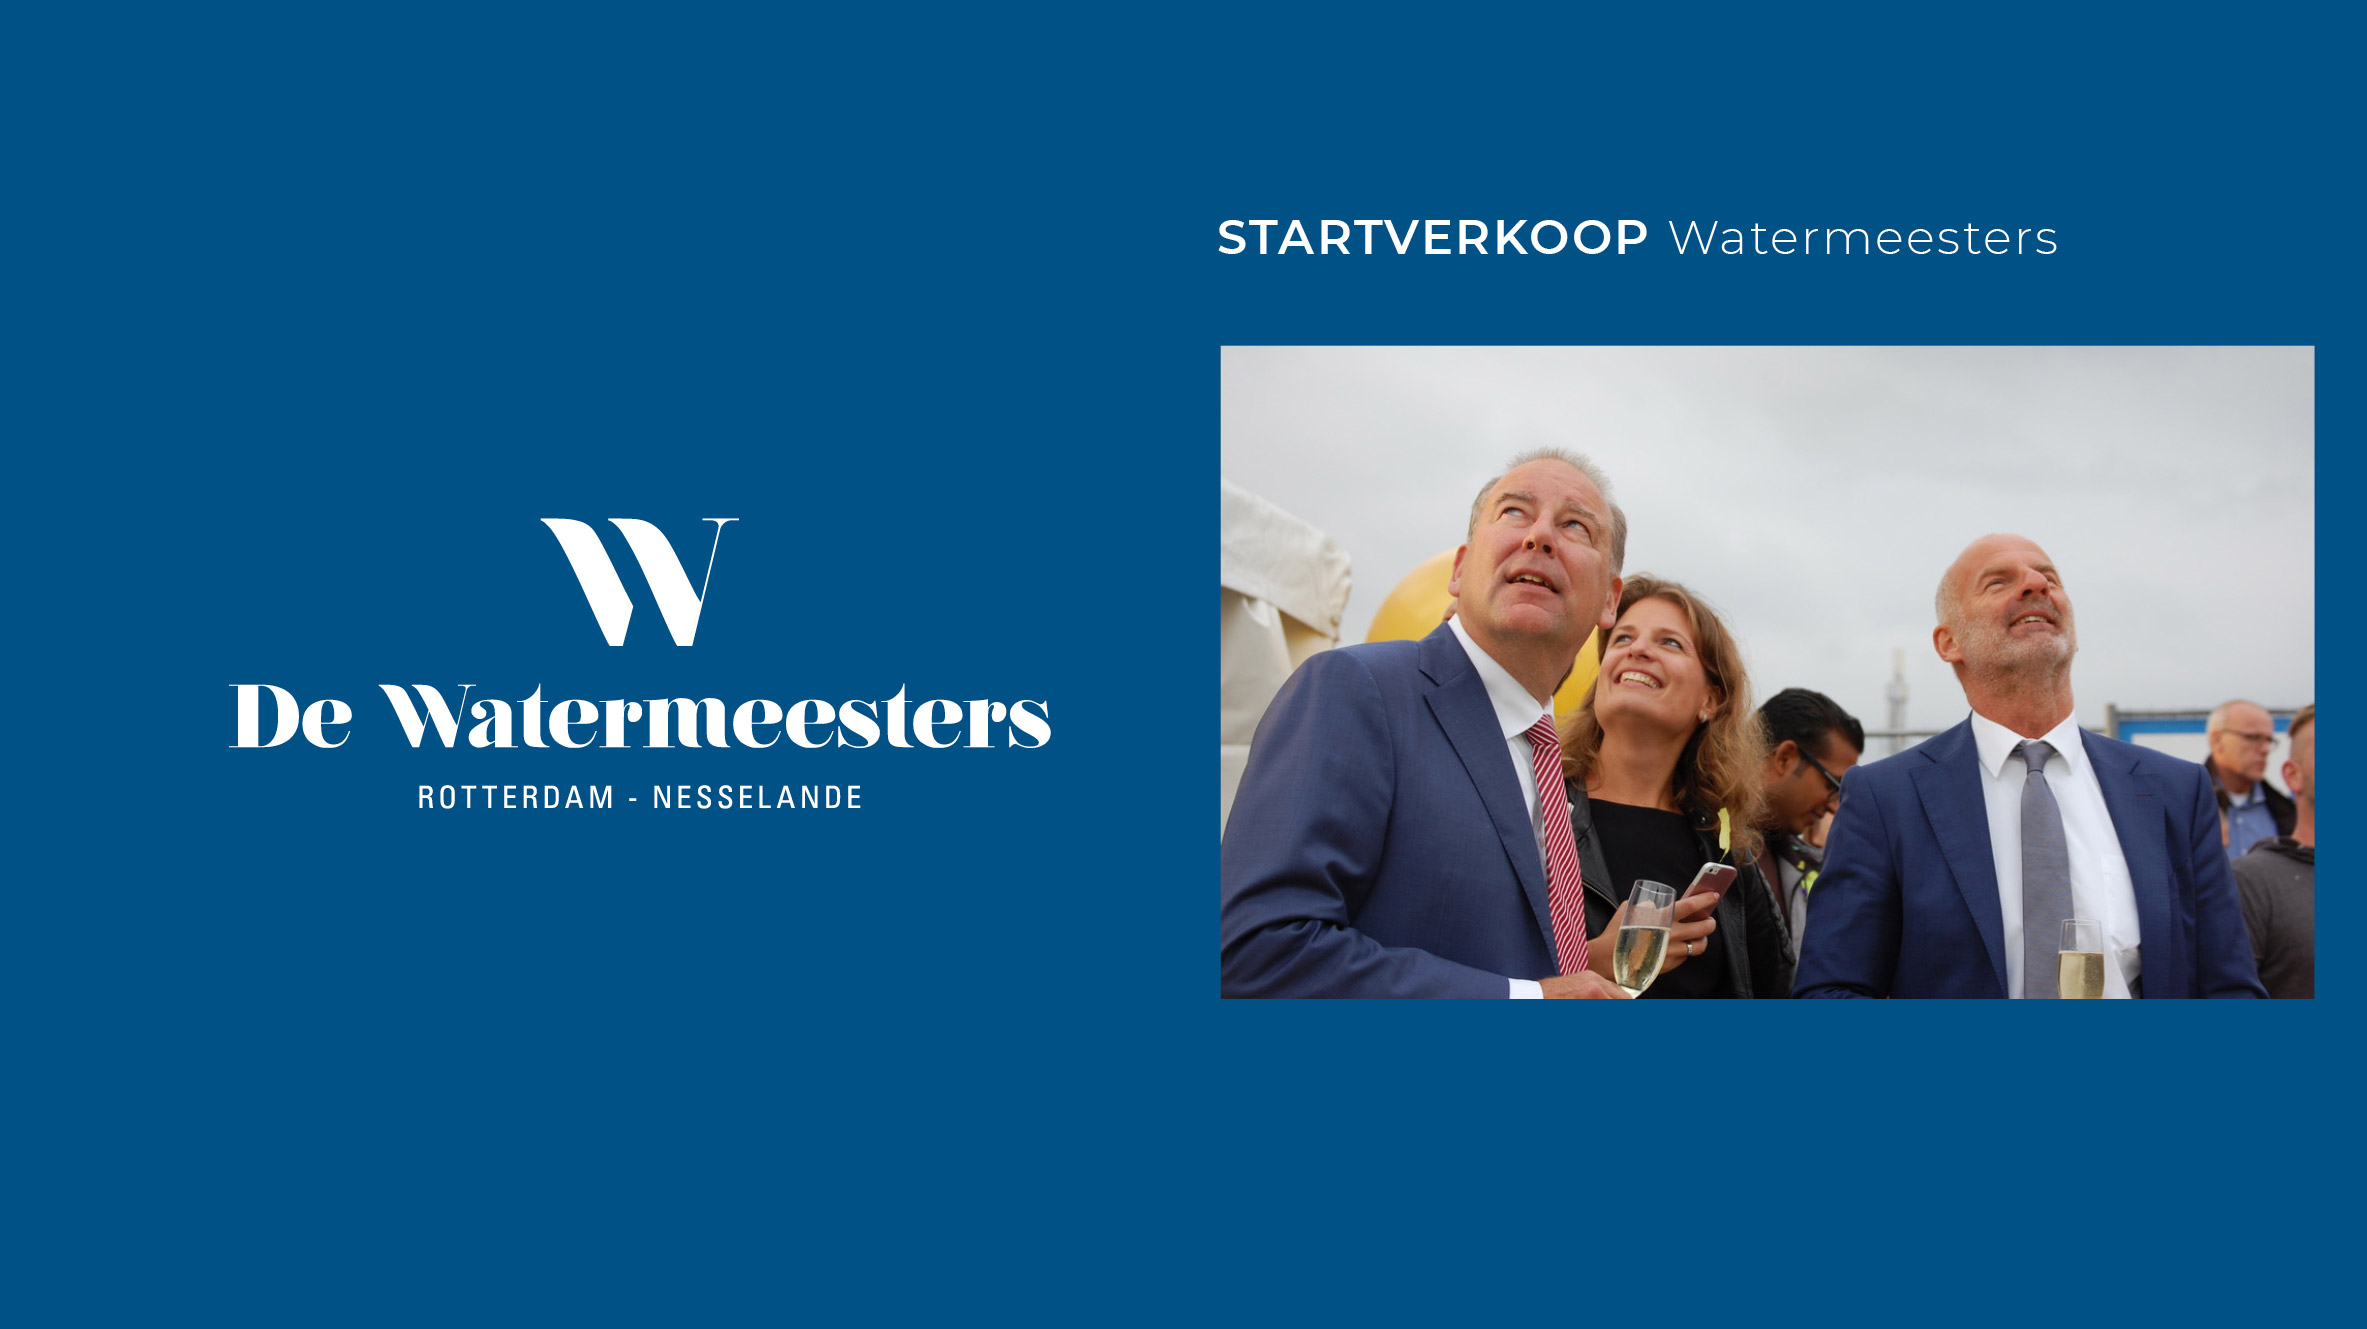 Watermeesters